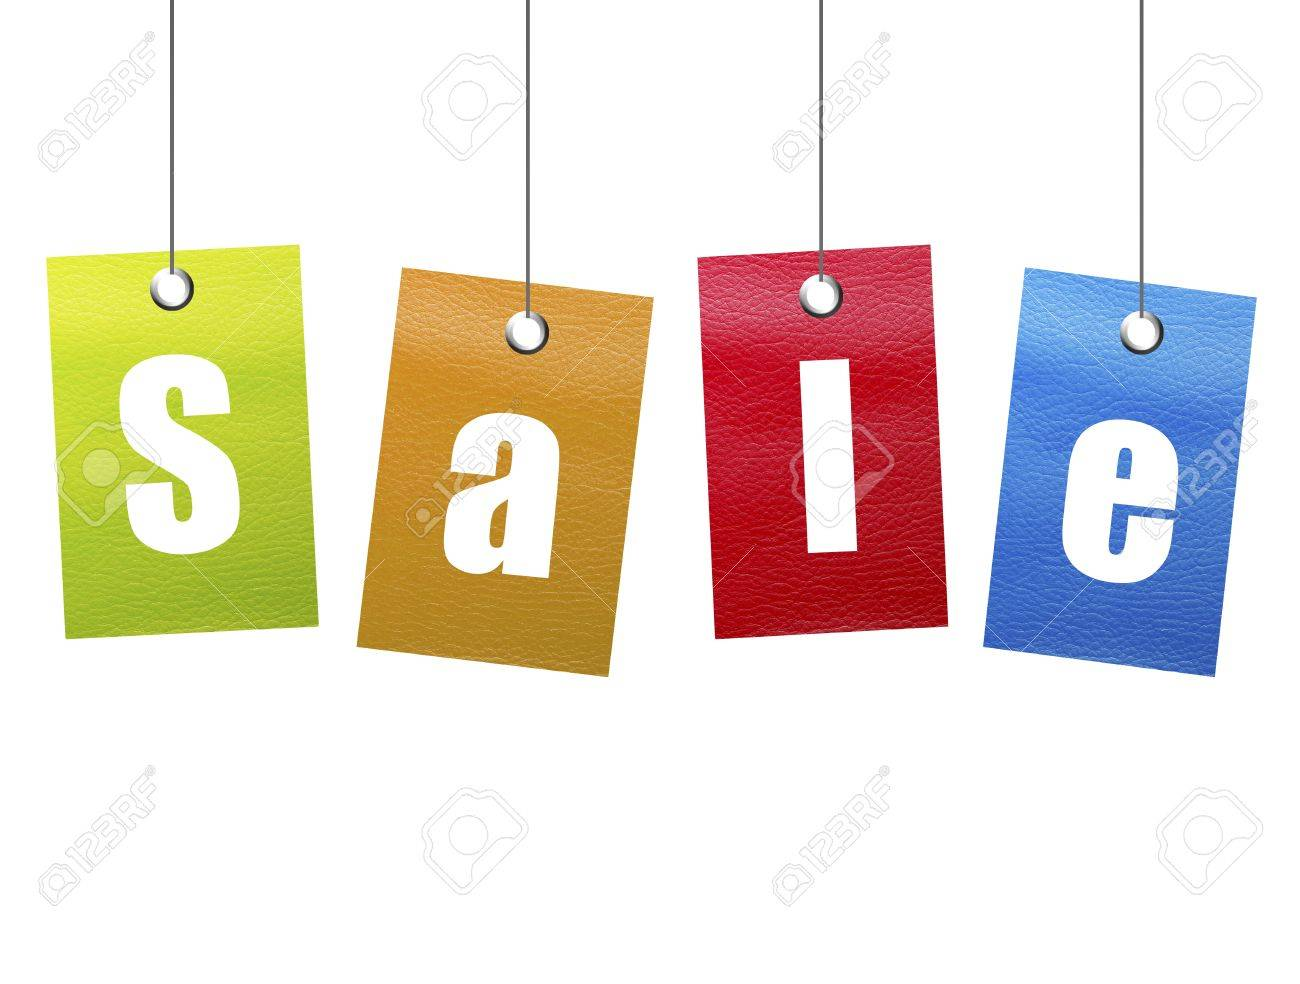 Orange, green, blue and red hangling sale advertisement over white background. Stock Photo - 8912654